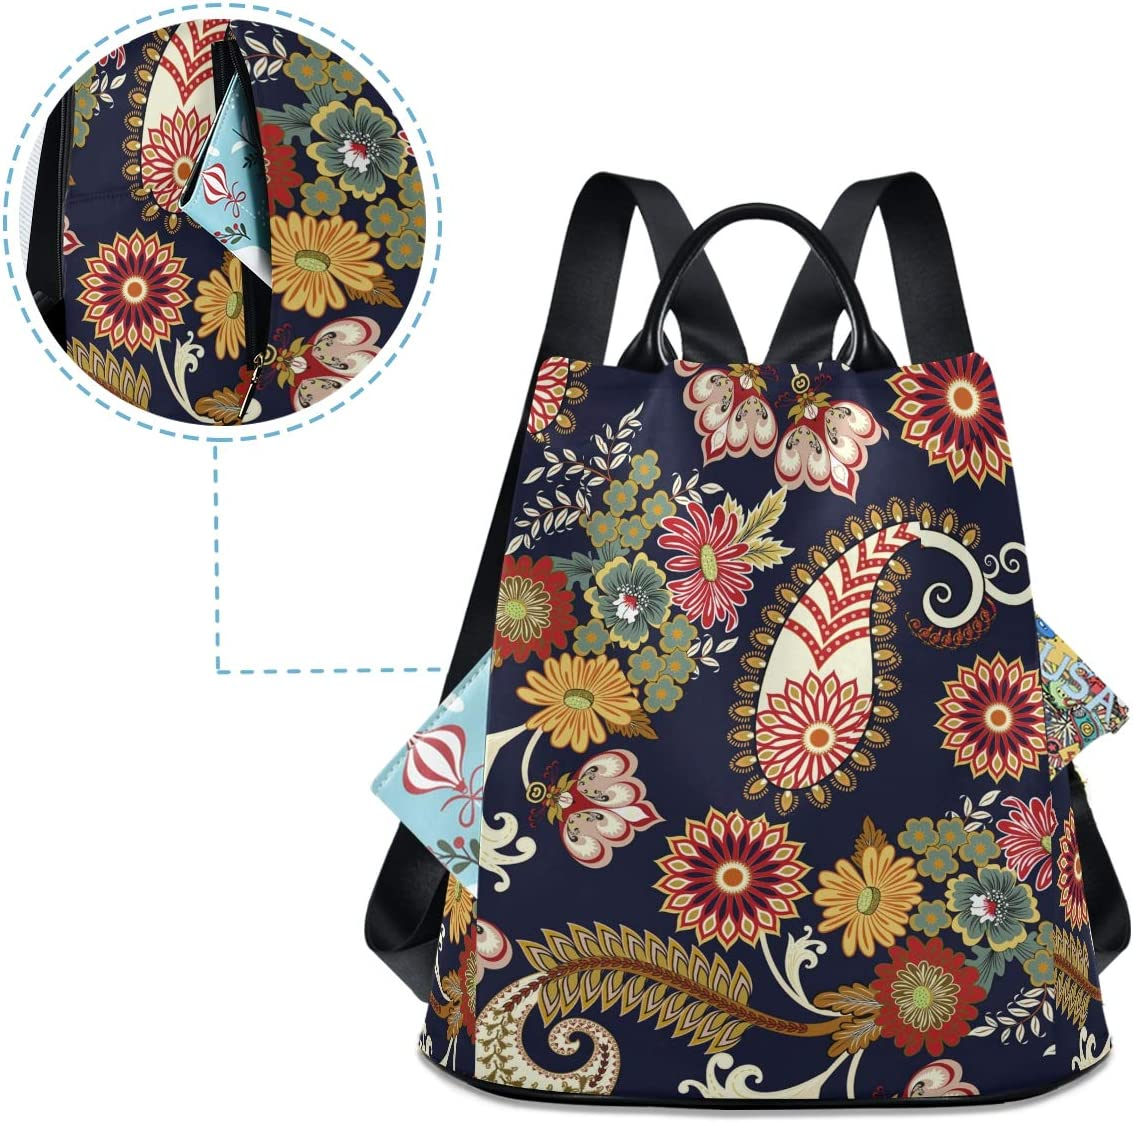 ALAZA Paisley Floral Ethnic Pattern Navy Blue Backpack Purse for Women Anti Theft Fashion Back Pack Shoulder Bag